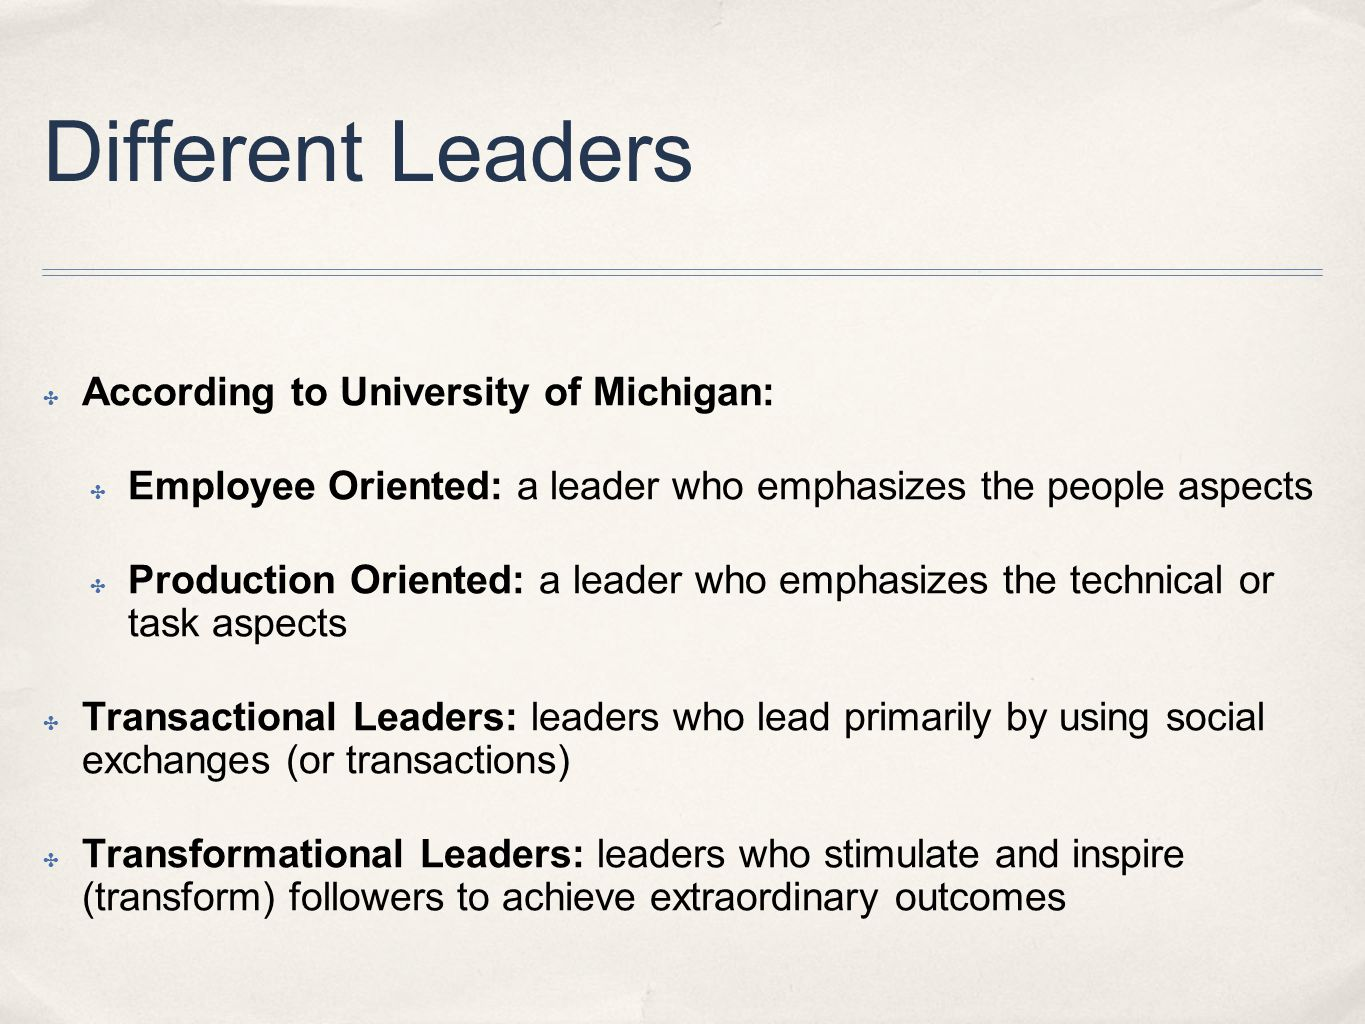 Different Leaders ✤ According to University of Michigan: ✤ Employee Oriented: a leader who emphasizes the people aspects ✤ Production Oriented: a leader who emphasizes the technical or task aspects ✤ Transactional Leaders: leaders who lead primarily by using social exchanges (or transactions) ✤ Transformational Leaders: leaders who stimulate and inspire (transform) followers to achieve extraordinary outcomes